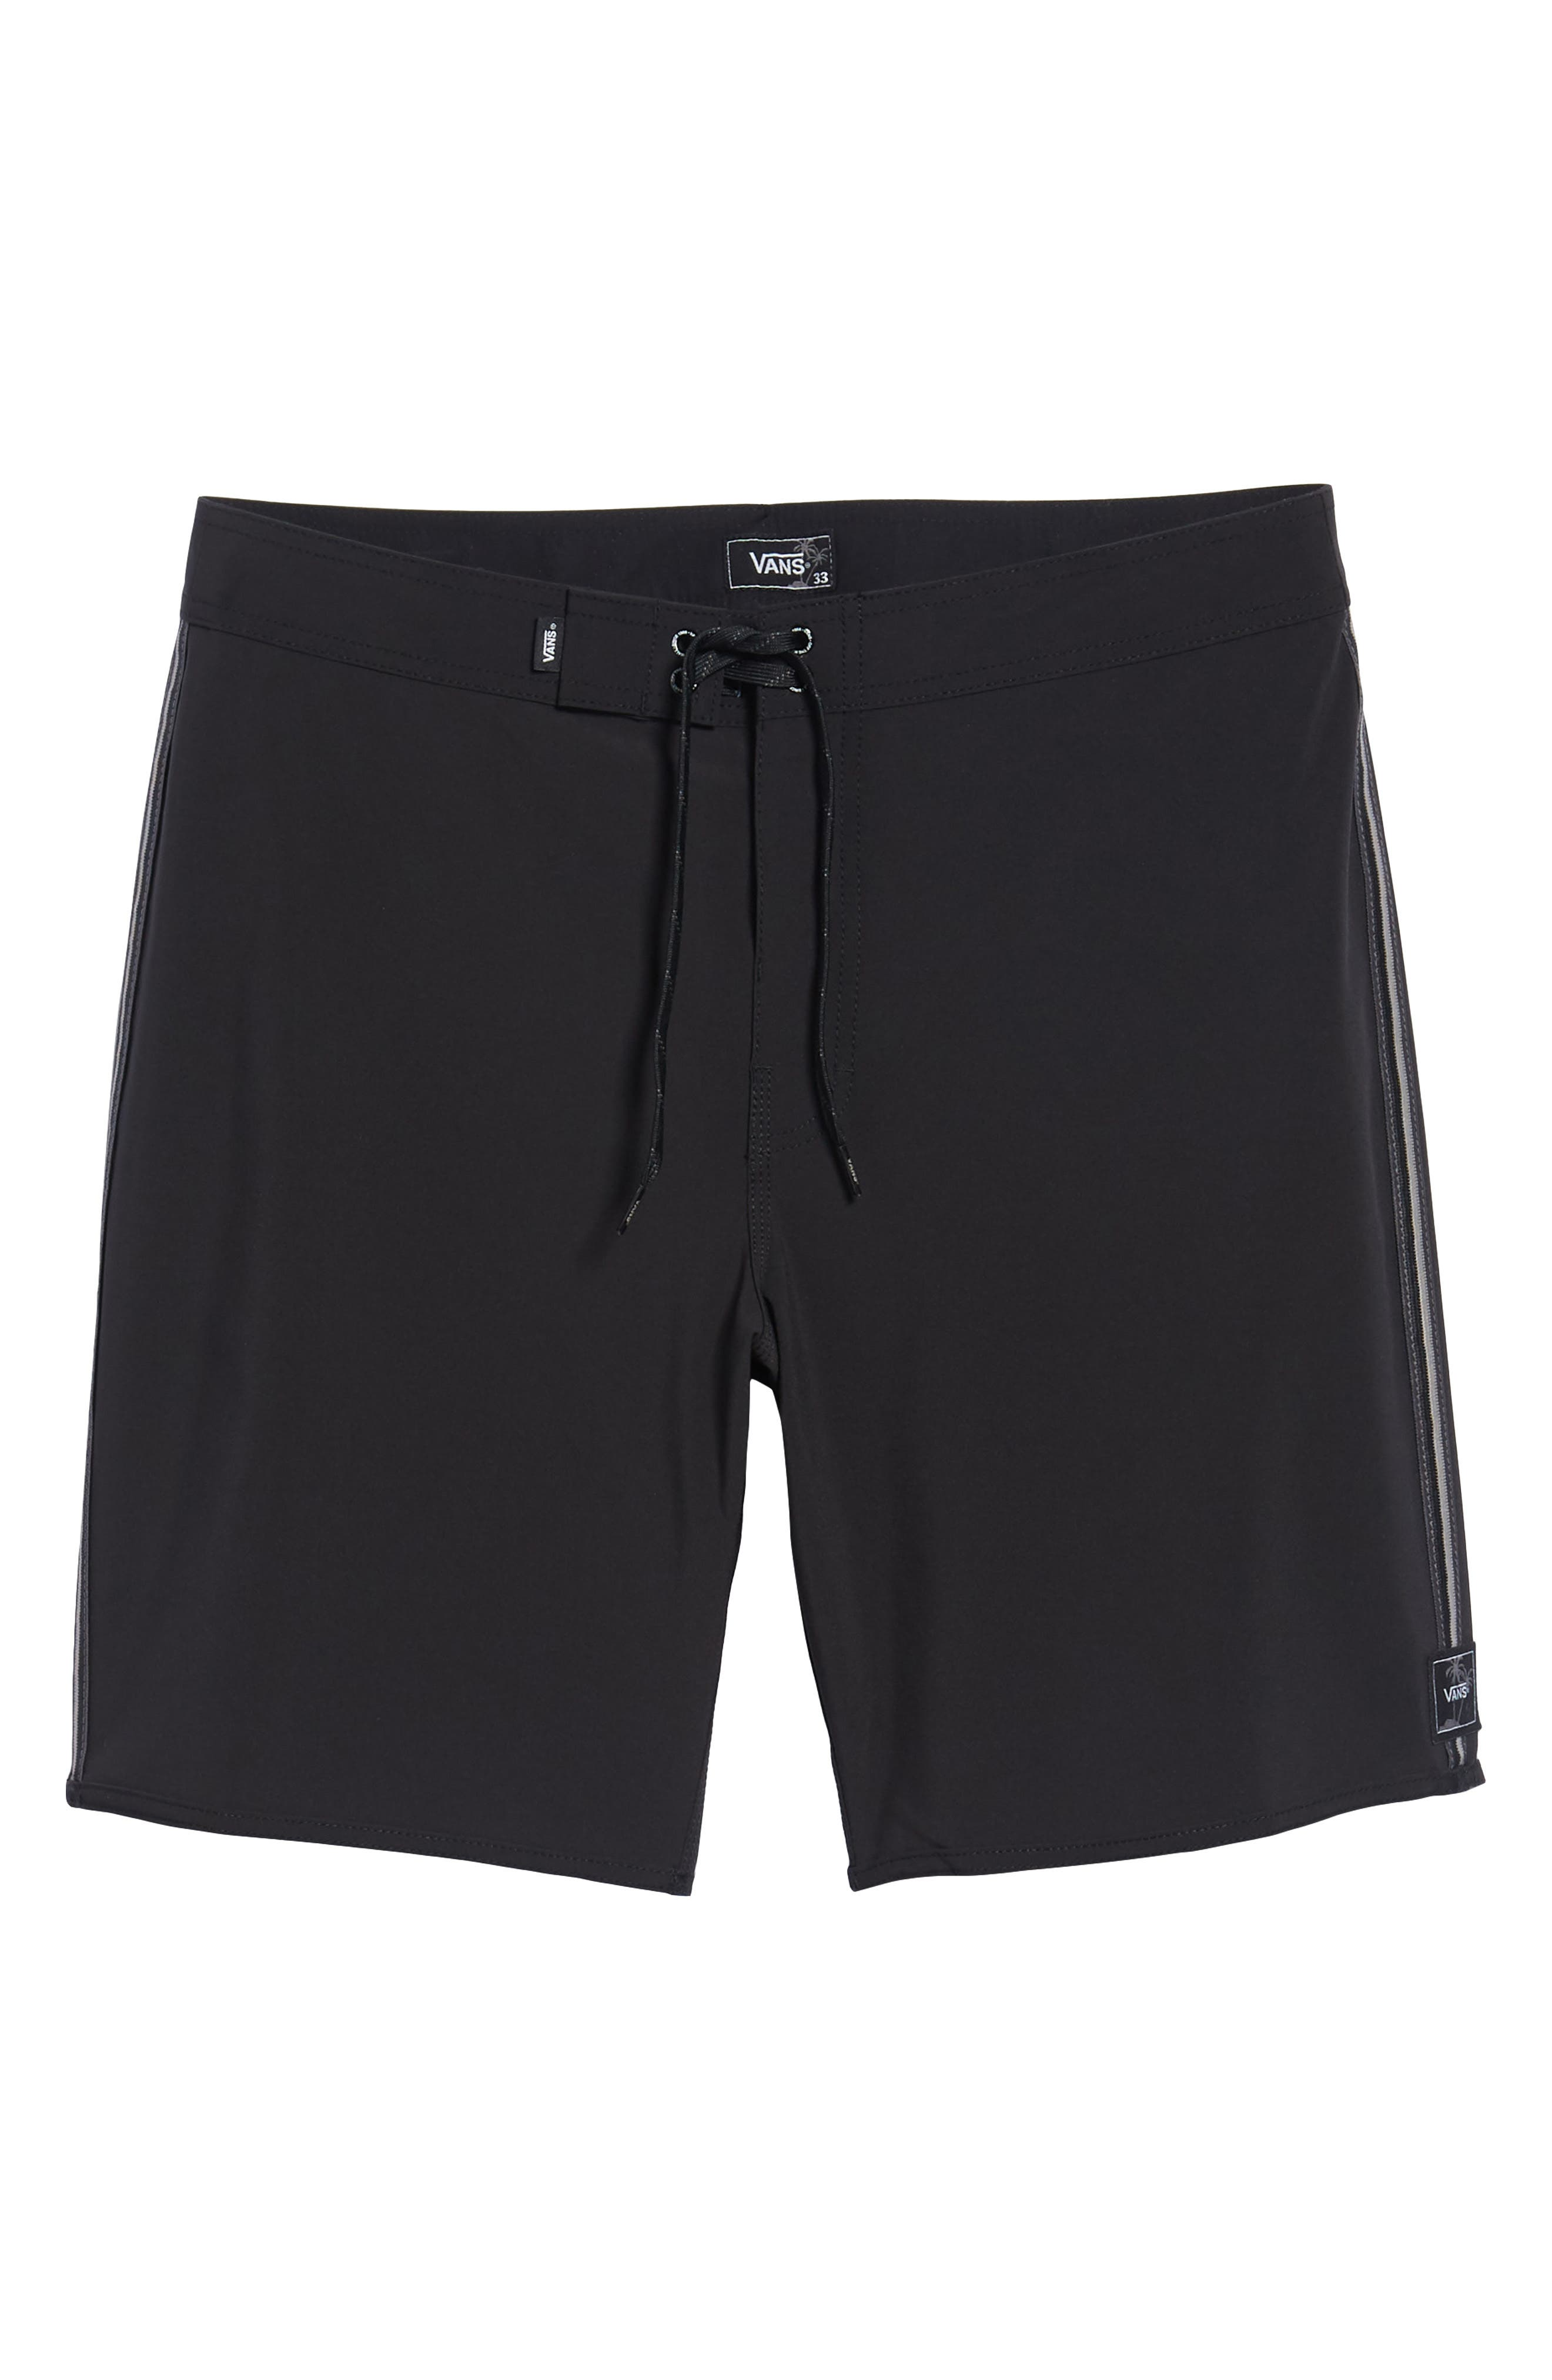 Houser Side Stripe Board Shorts,                             Alternate thumbnail 6, color,                             001